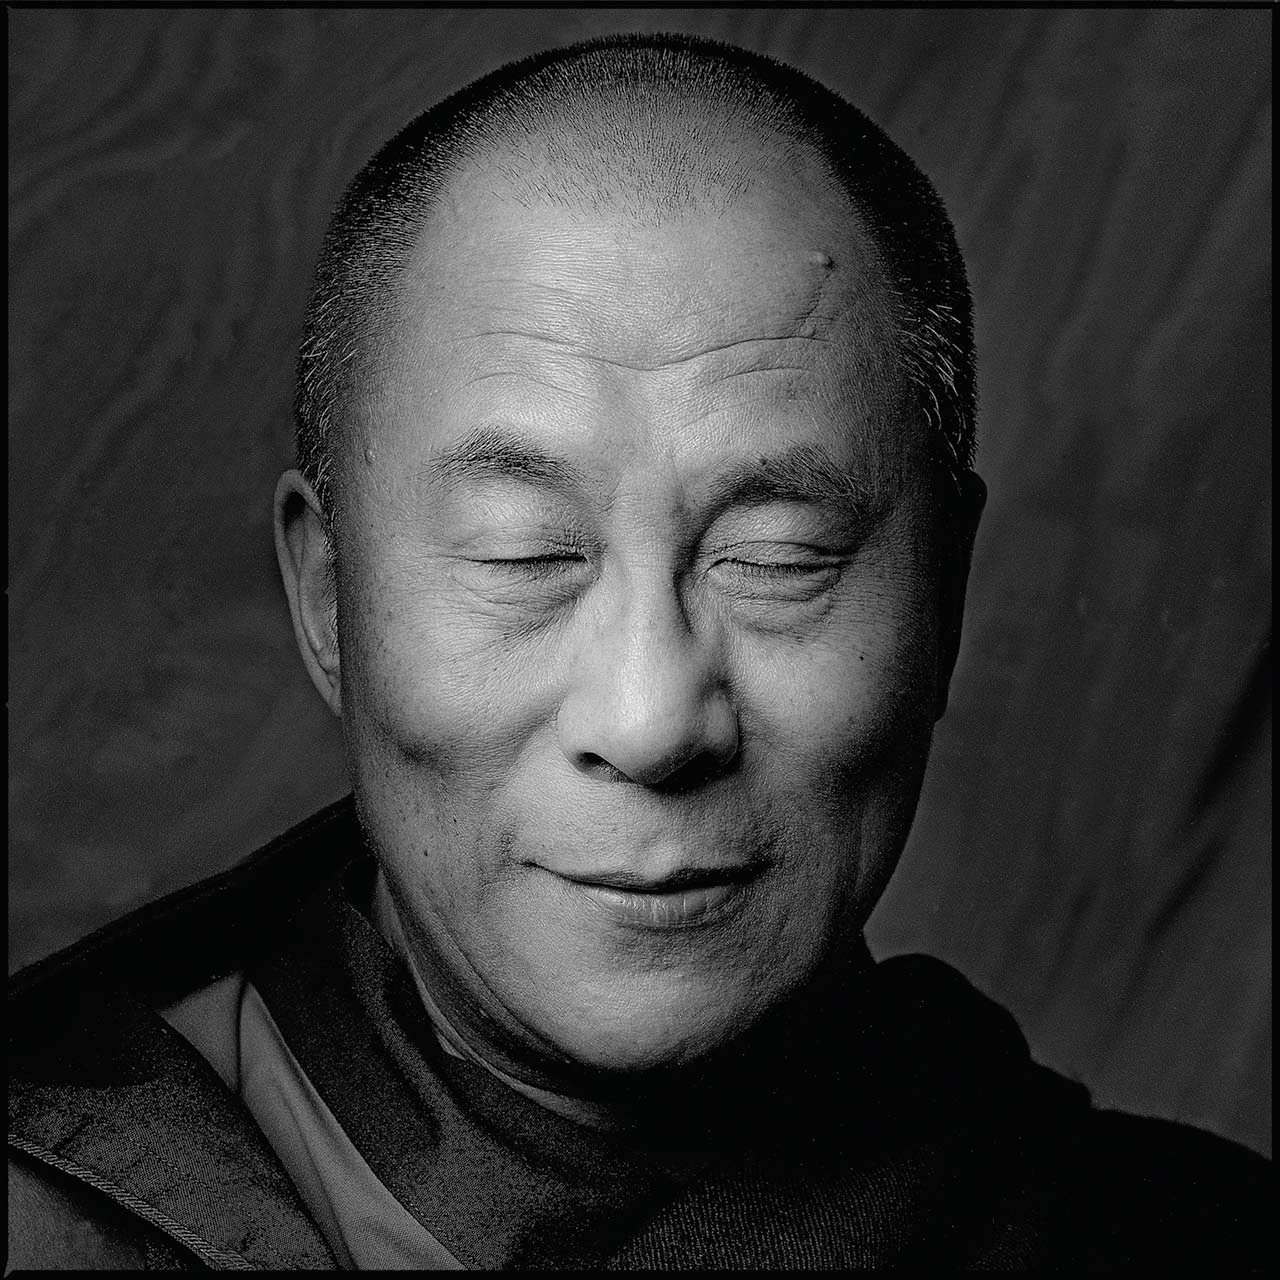 HH-Dalai-Lama-Eyes-Closed-Square-Arrowsmth-